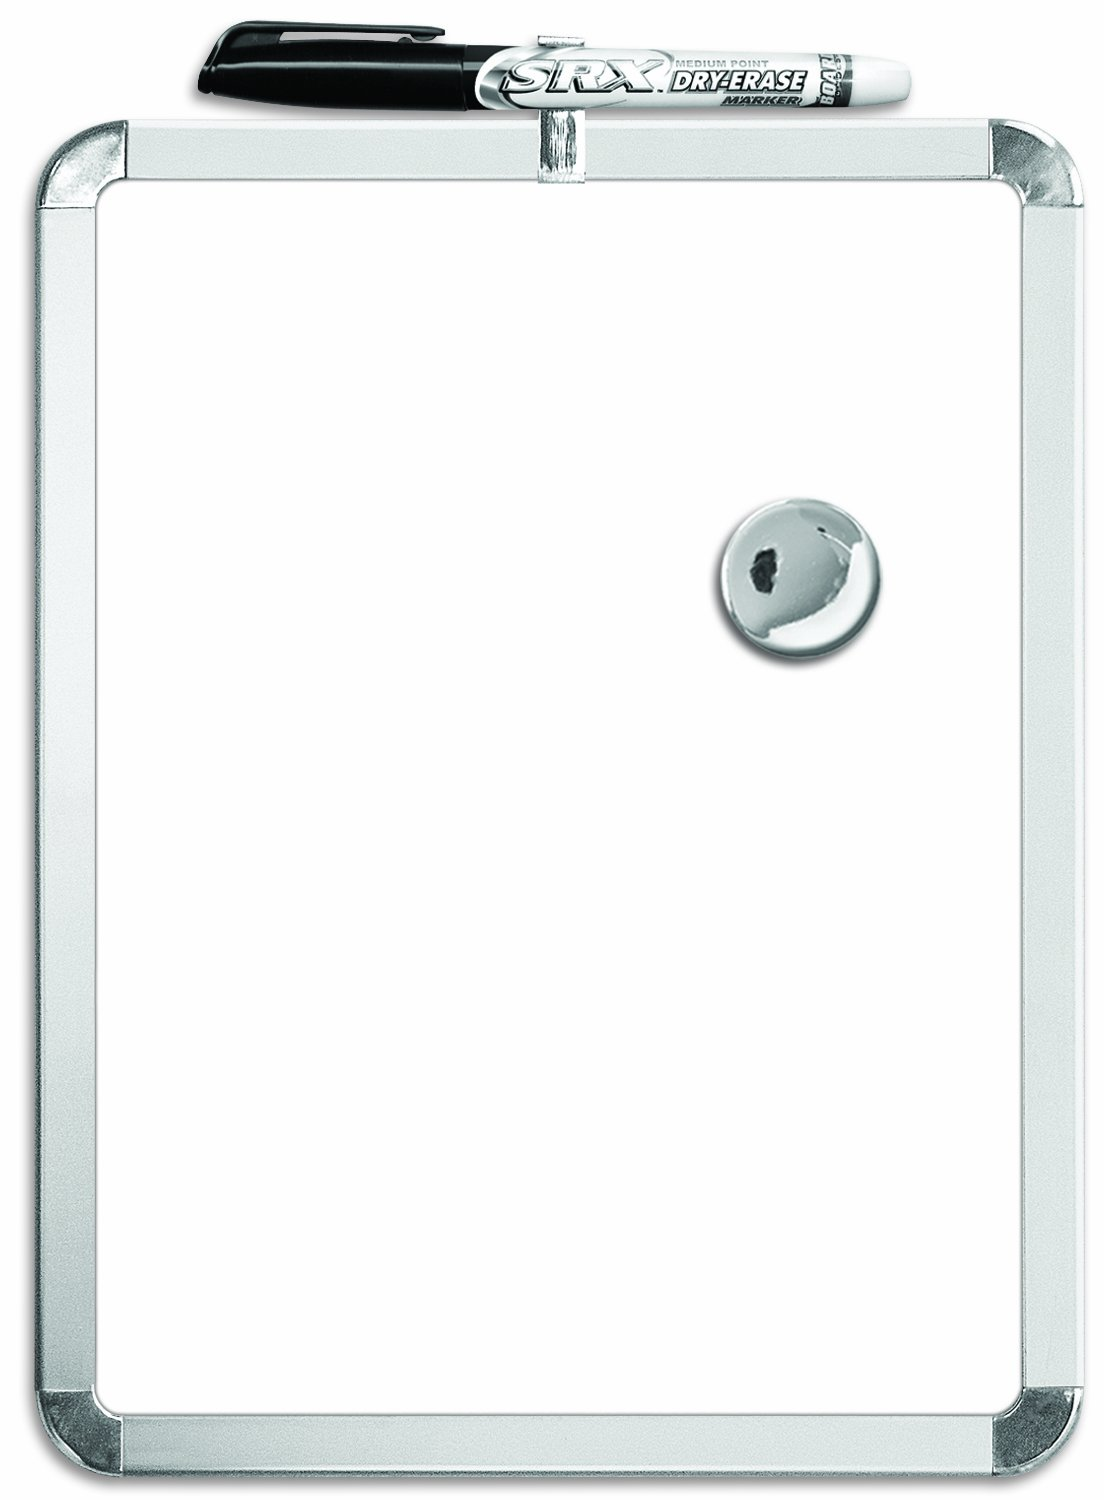 8.5x11 Magnetic Dry Erase Board